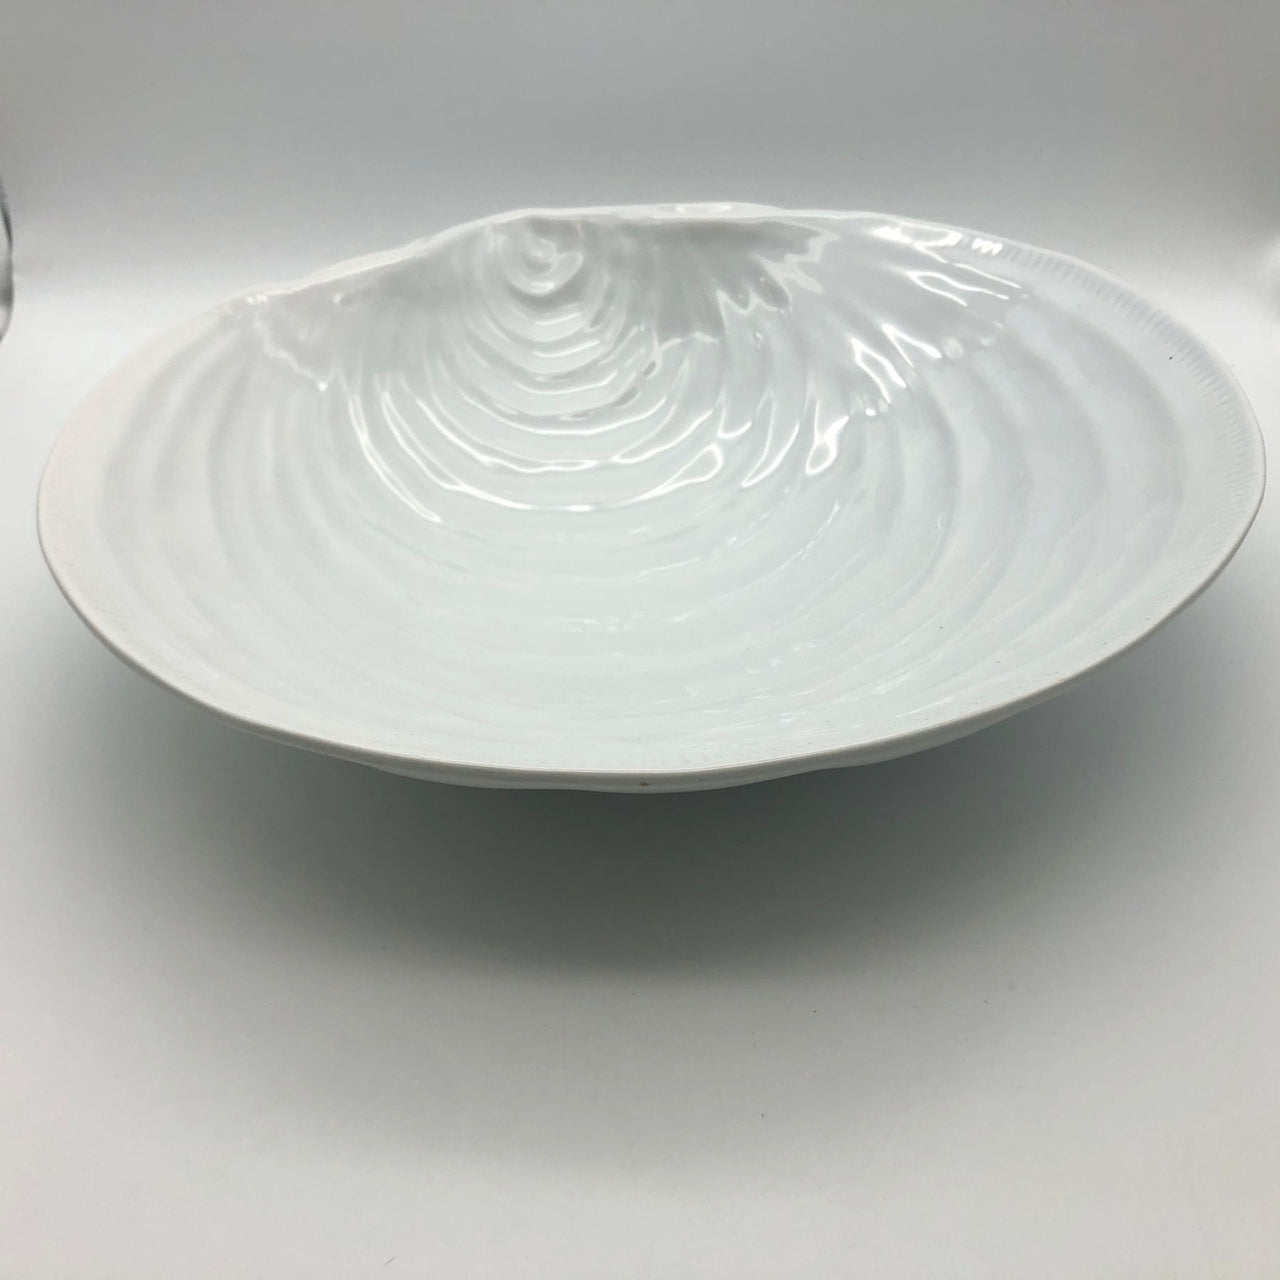 Pottery Barn White Clamshell Large Serving Bowl 14-1/4""